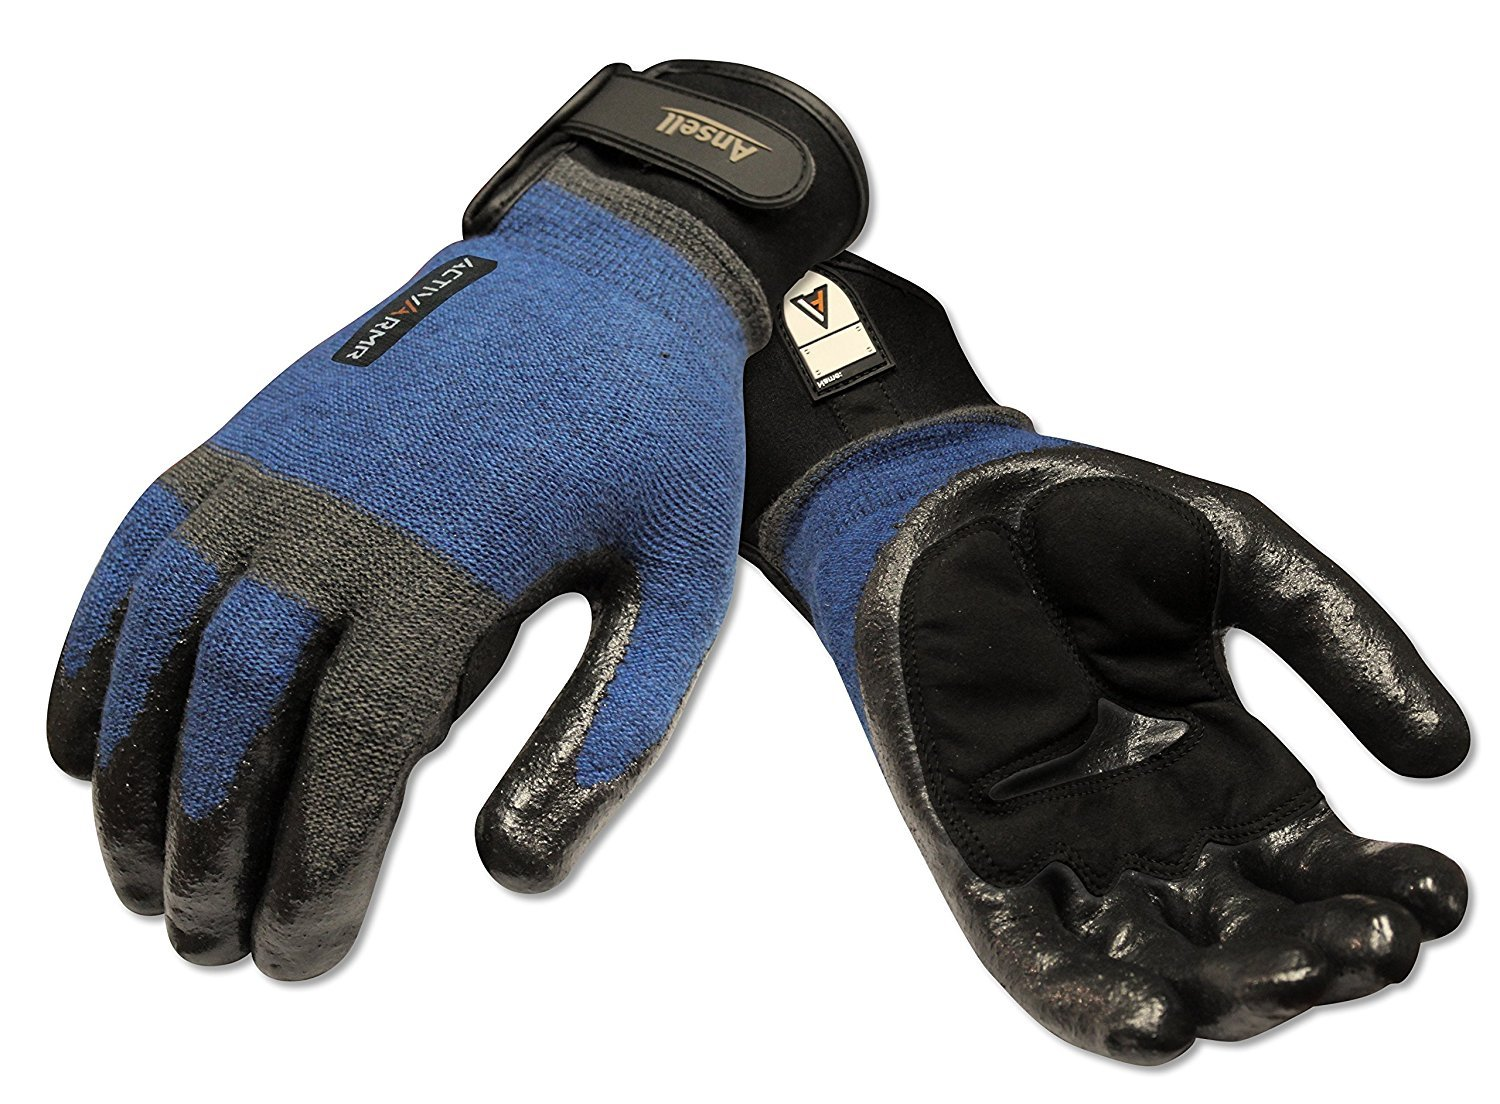 Ansell ActivArmr 97-003 Nitrile Coated Heavy Laborer Gloves, Cut Resistant, Hook and Loop Cuff, X-Large, Blue/Black (1 Pair)